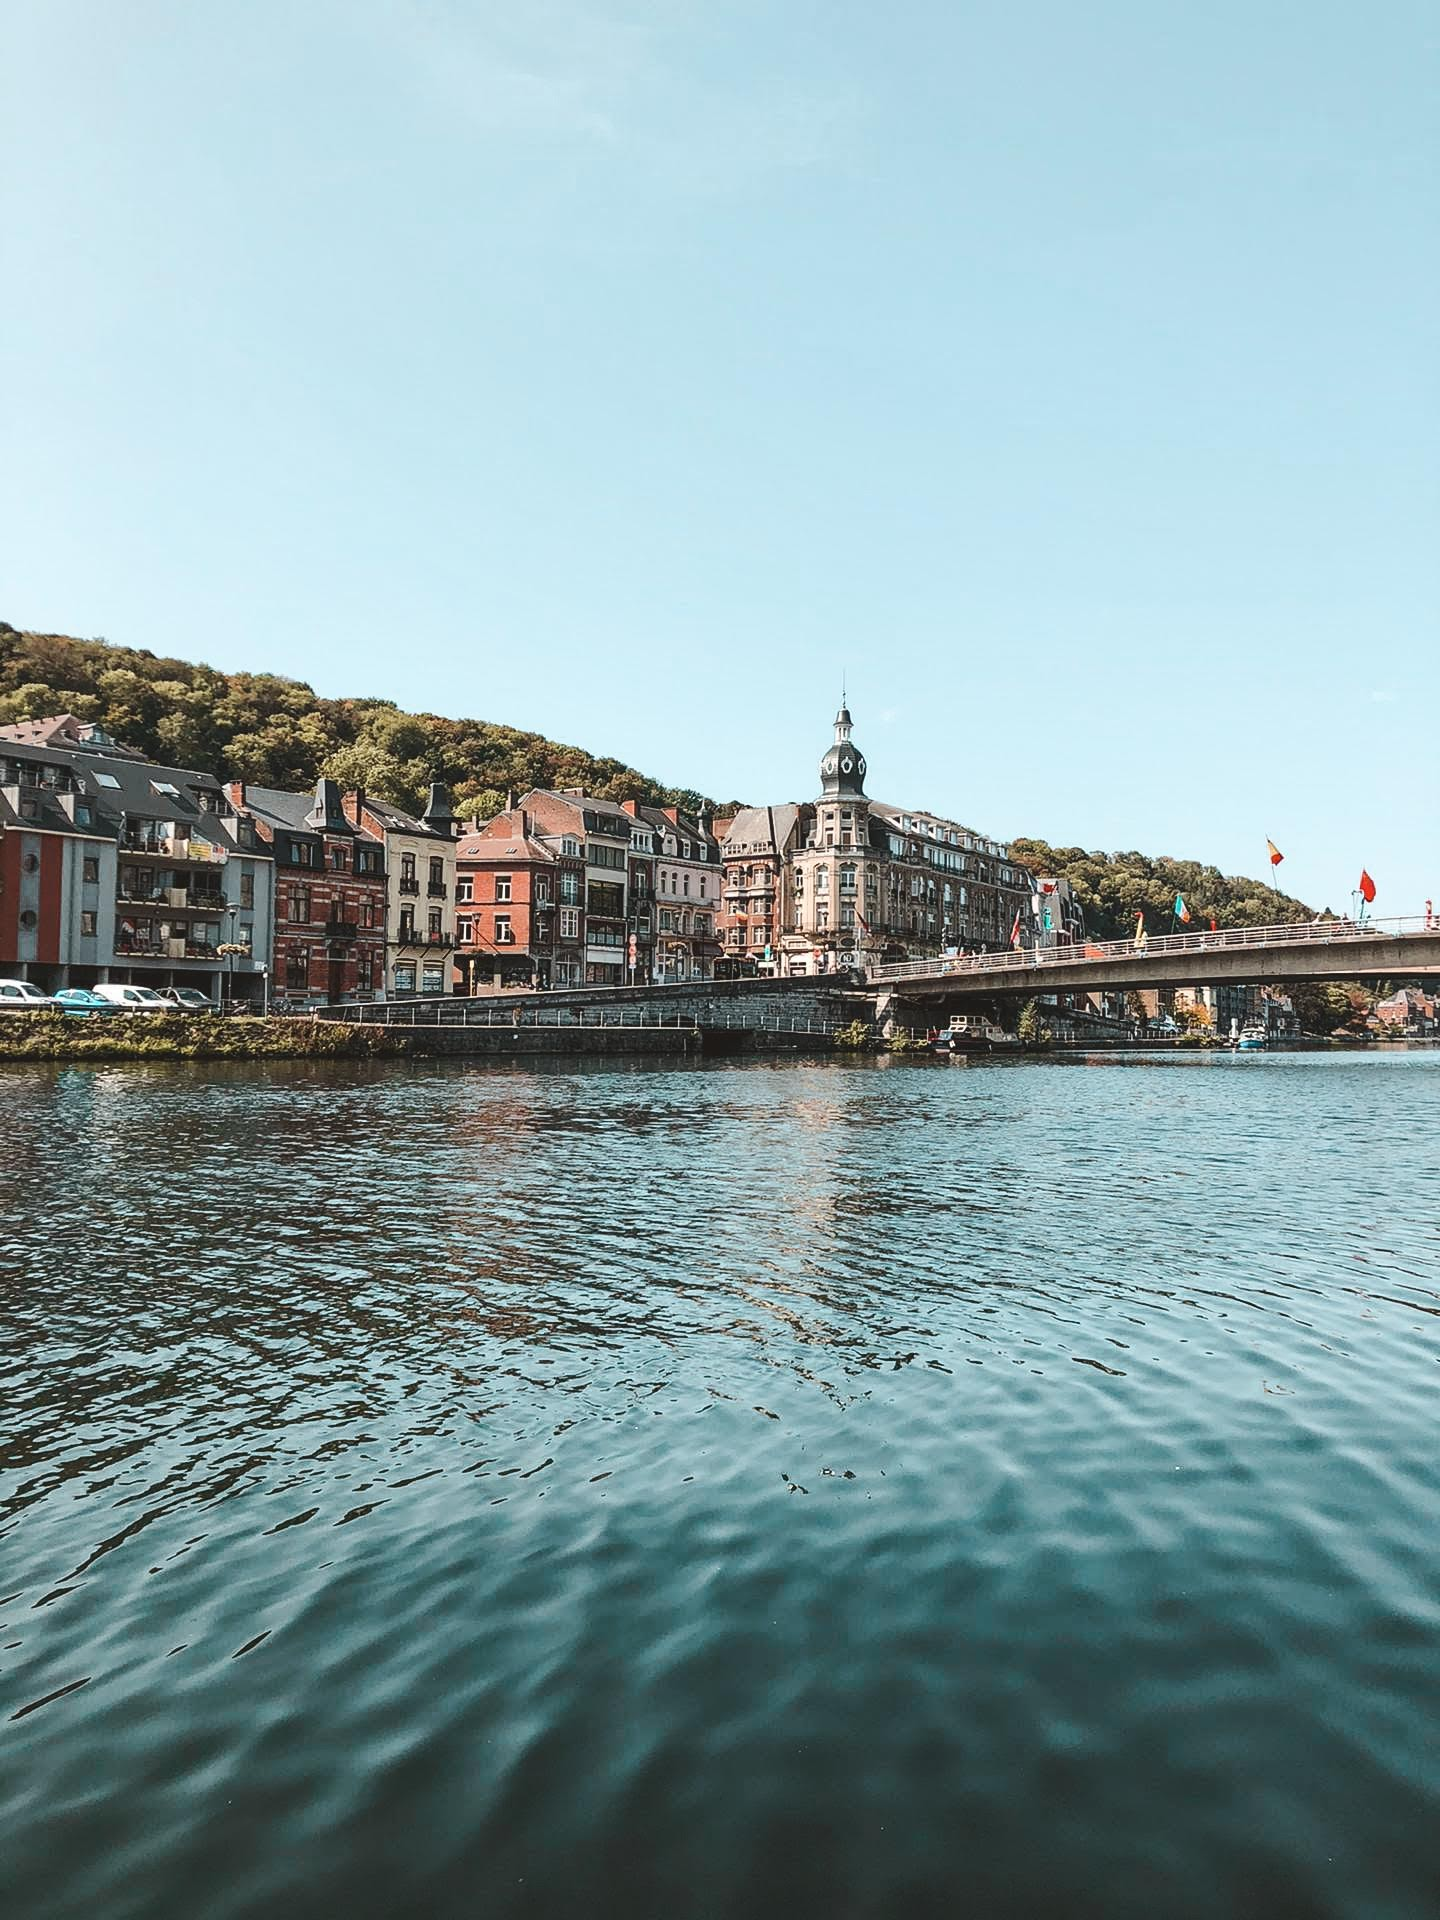 Dinant, Wallonia, Belgium and the Meuse River